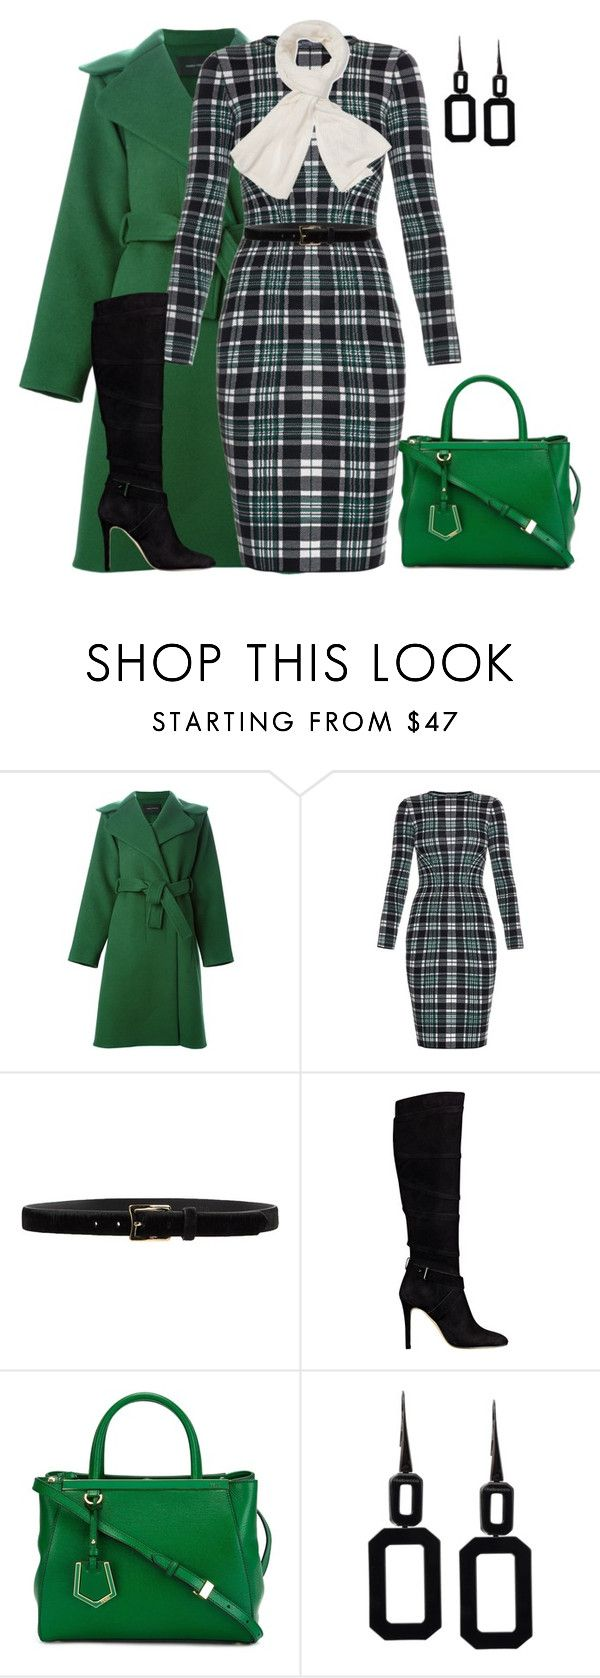 """outfit 2373"" by natalyag ❤ liked on Polyvore featuring Cédric Charlier, Alexander McQueen, D'Amico, GUESS, Fendi, Rebecca and Magaschoni"